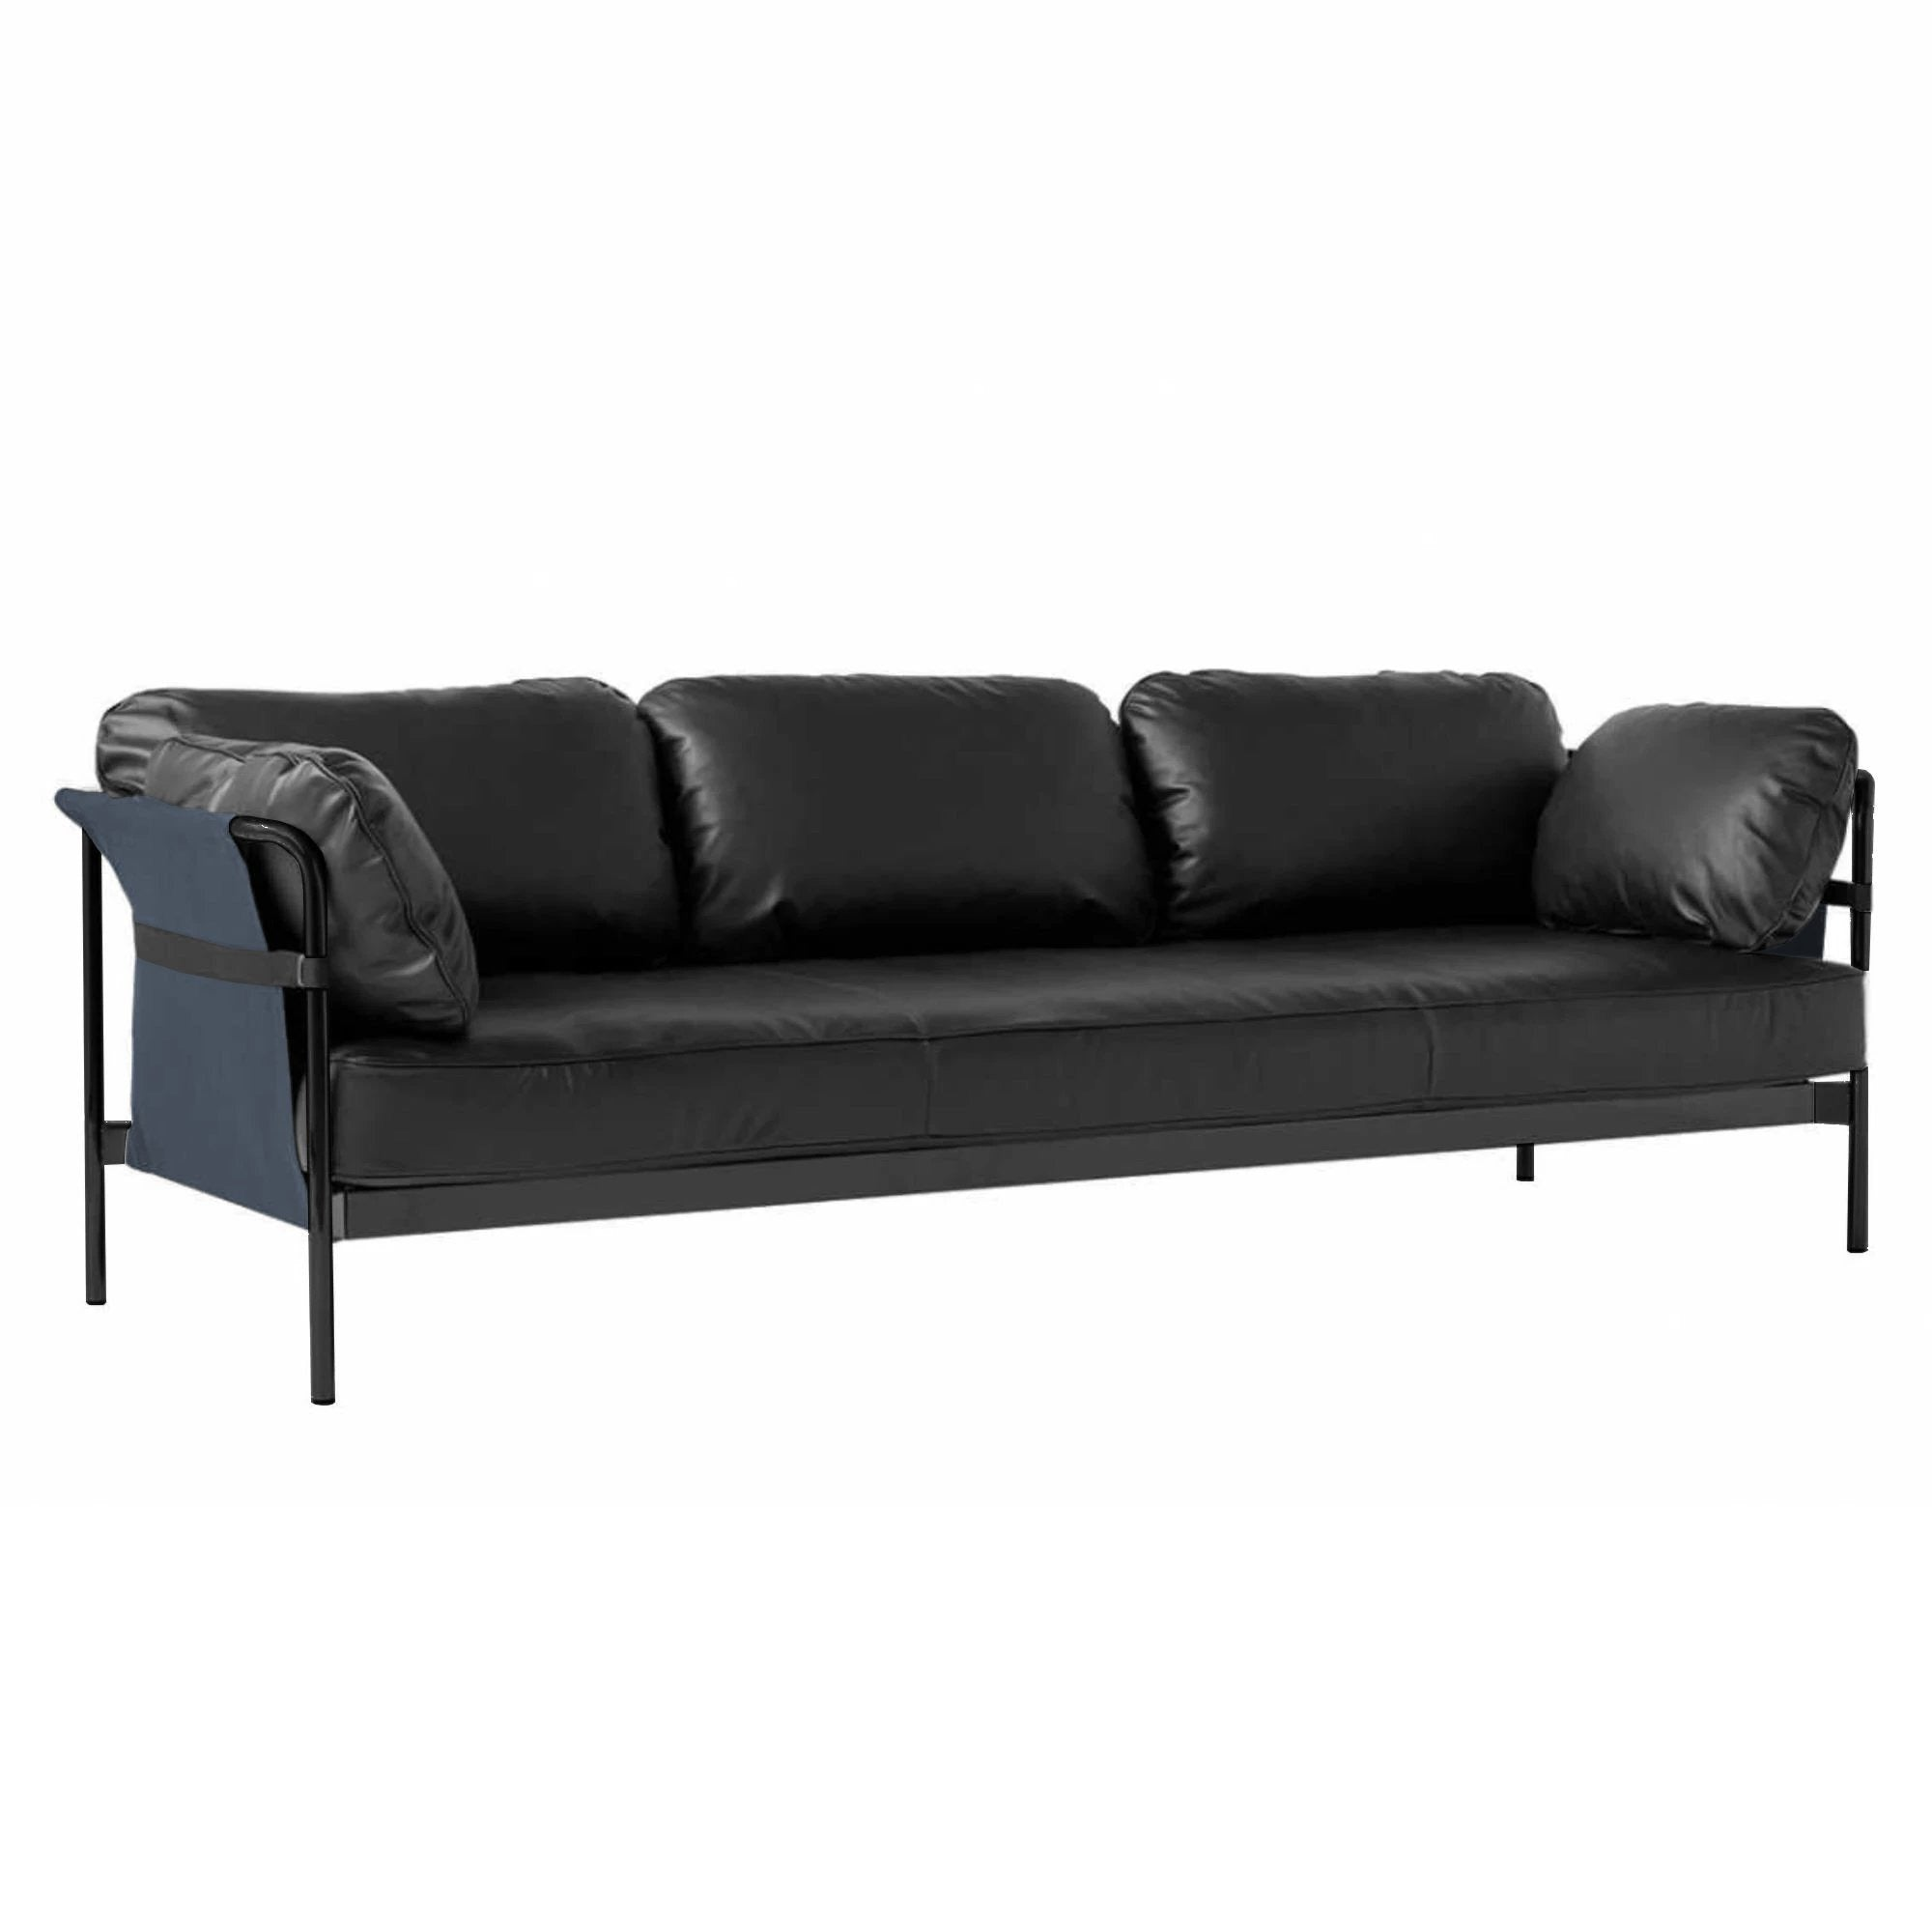 HAY Can 3-Seater Sofa 2.0 , Black-Navy-Silk0842